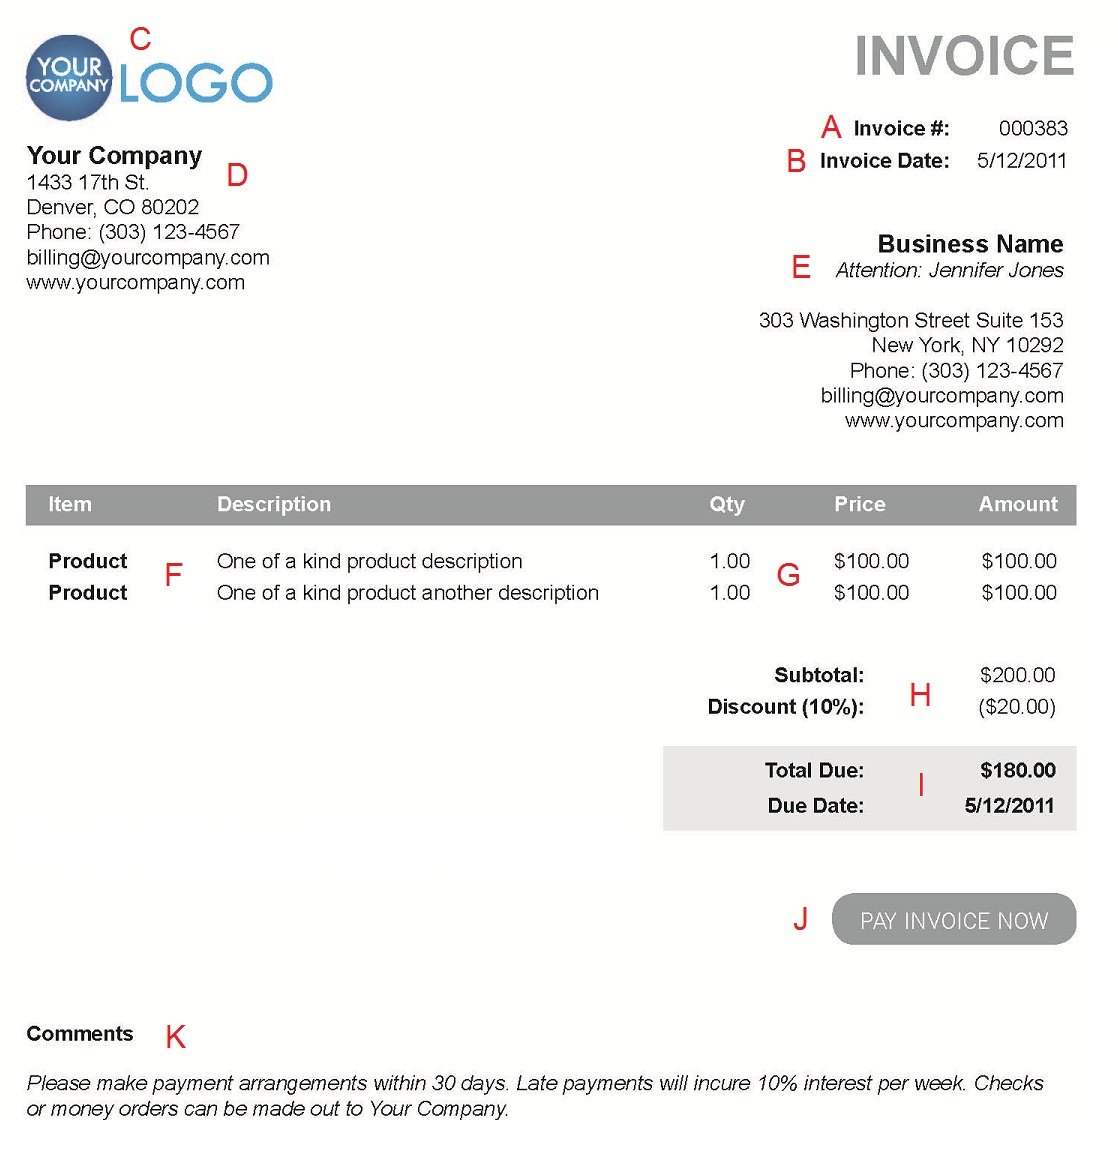 Ultrablogus  Pleasant The  Different Sections Of An Electronic Payment Invoice With Fascinating A  With Amusing Hsbc Invoice Also Processing Invoices For Payment In Addition Return To Invoice Gap Insurance And Free Invoice Program Download As Well As Ms Word Invoice Template Free Additionally Sample Invoices For Professional Services From Paysimplecom With Ultrablogus  Fascinating The  Different Sections Of An Electronic Payment Invoice With Amusing A  And Pleasant Hsbc Invoice Also Processing Invoices For Payment In Addition Return To Invoice Gap Insurance From Paysimplecom